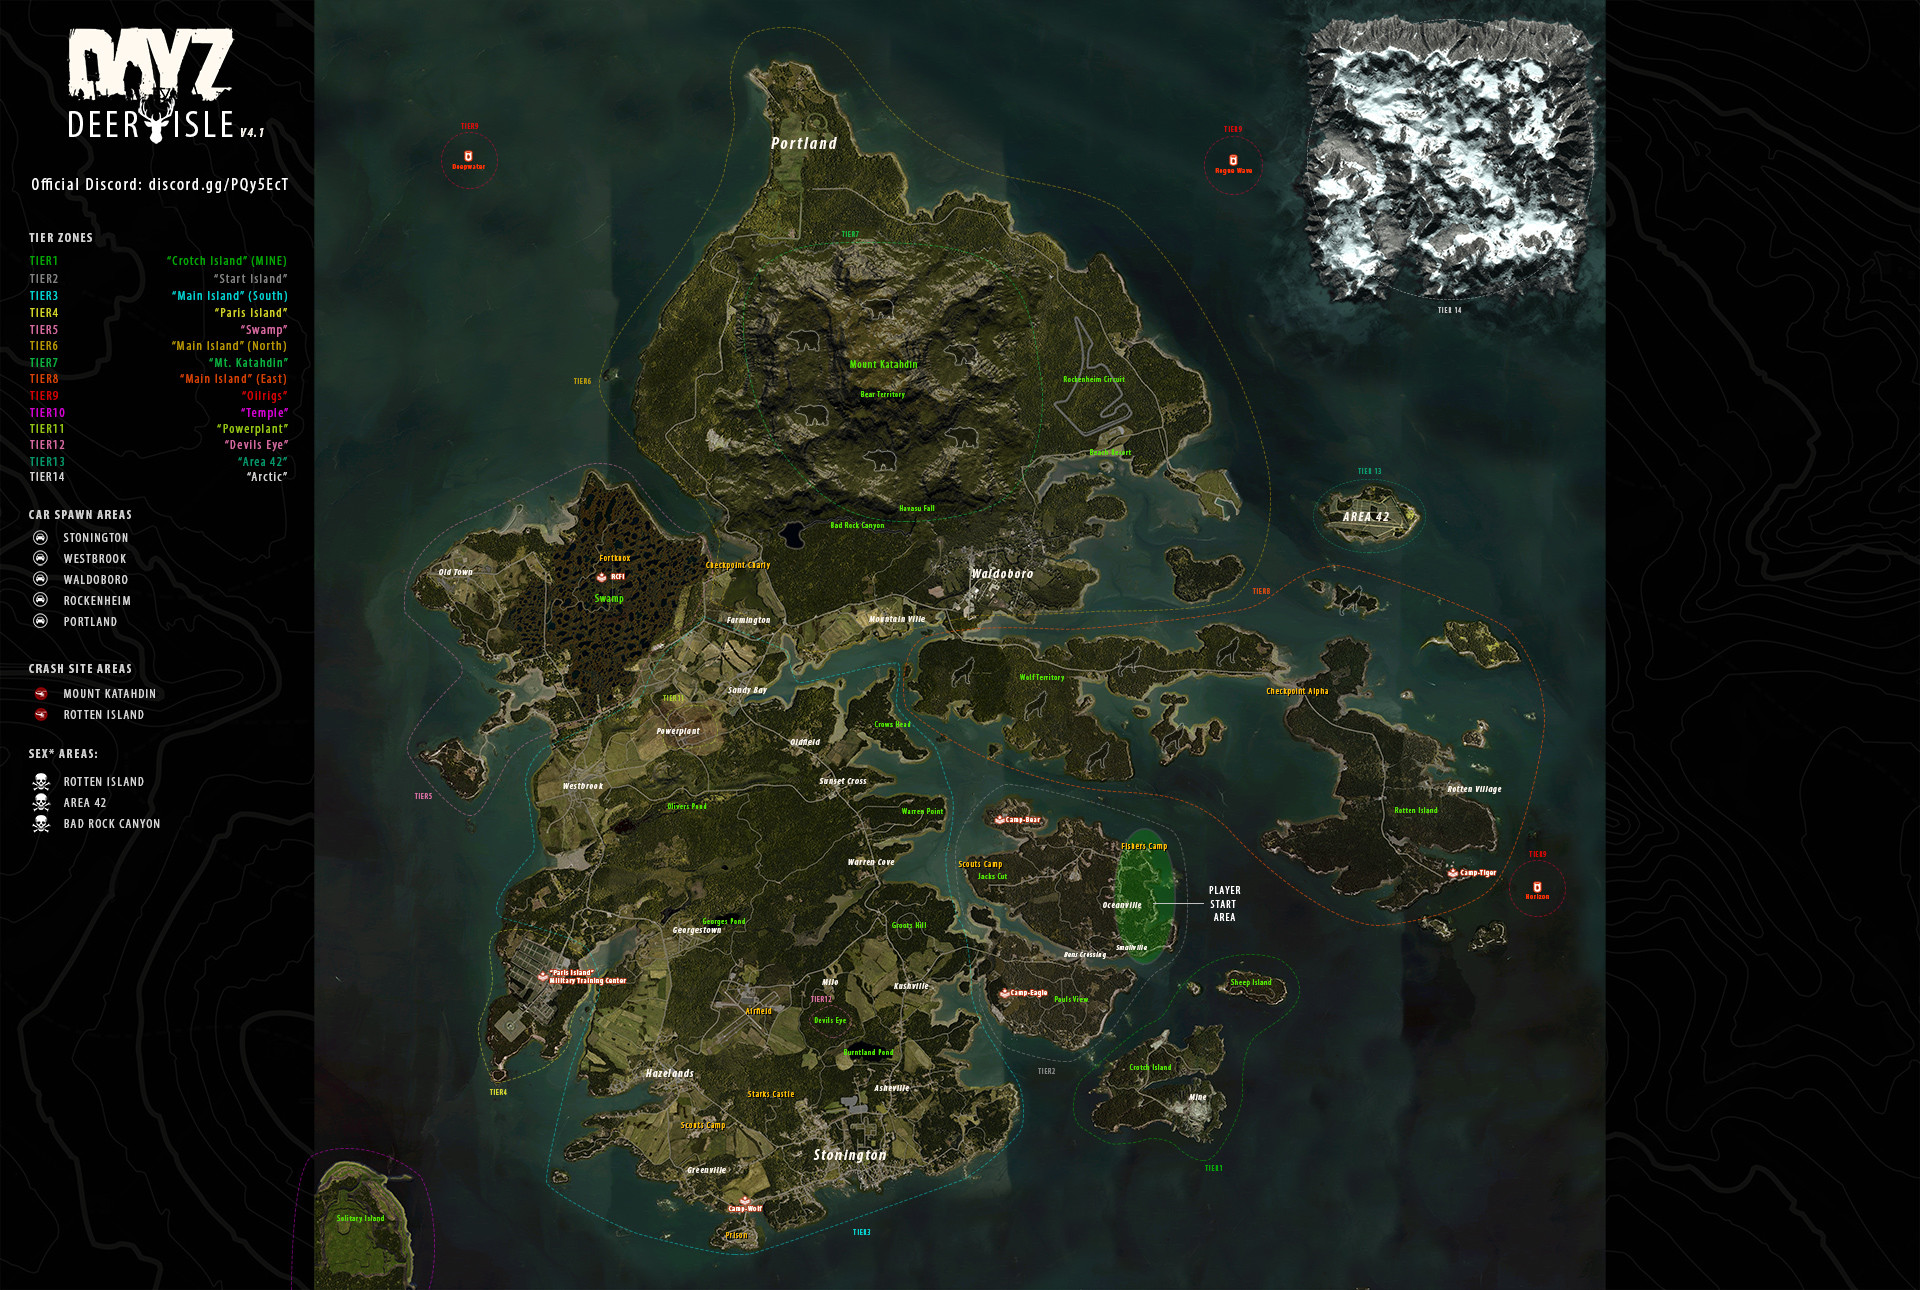 dayz-deer-isle-map-update-4